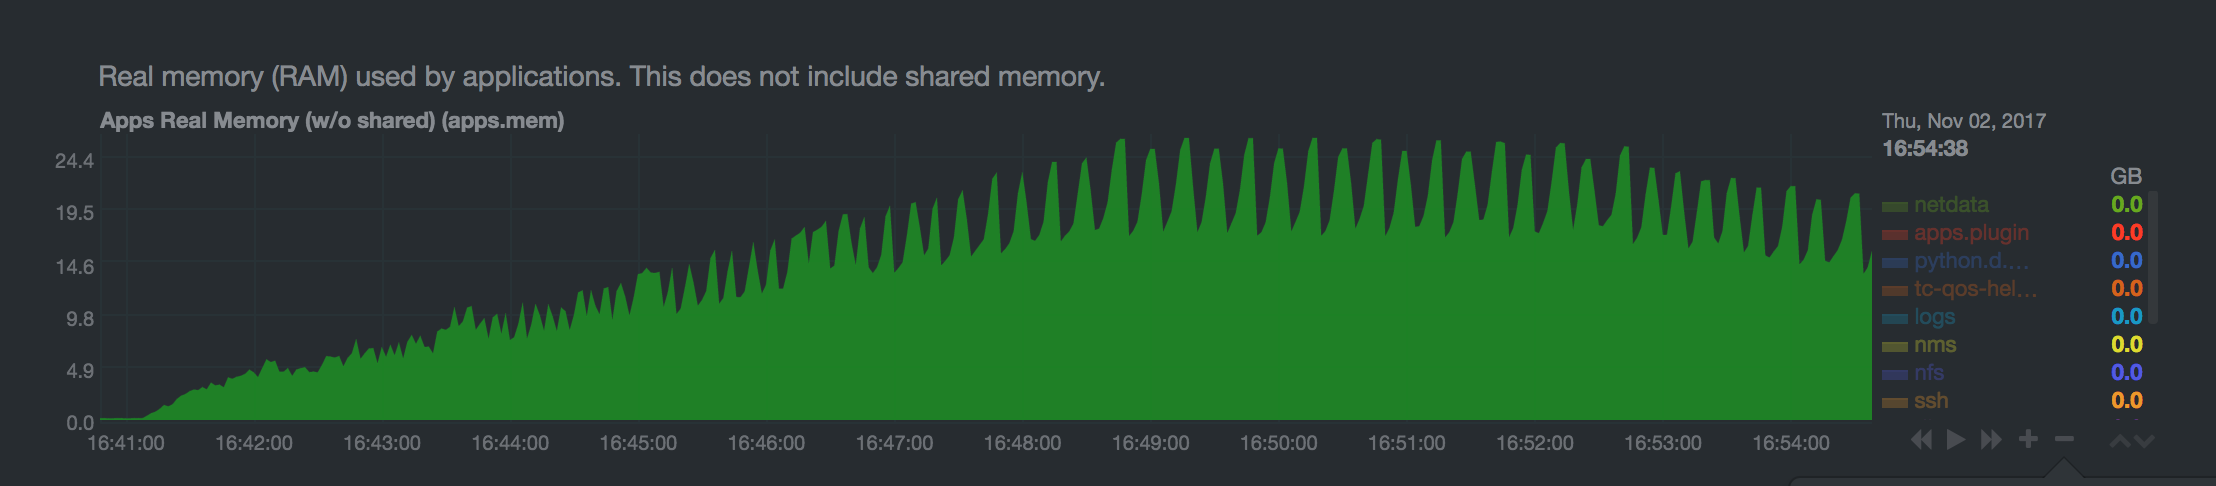 Queue under load memory usage